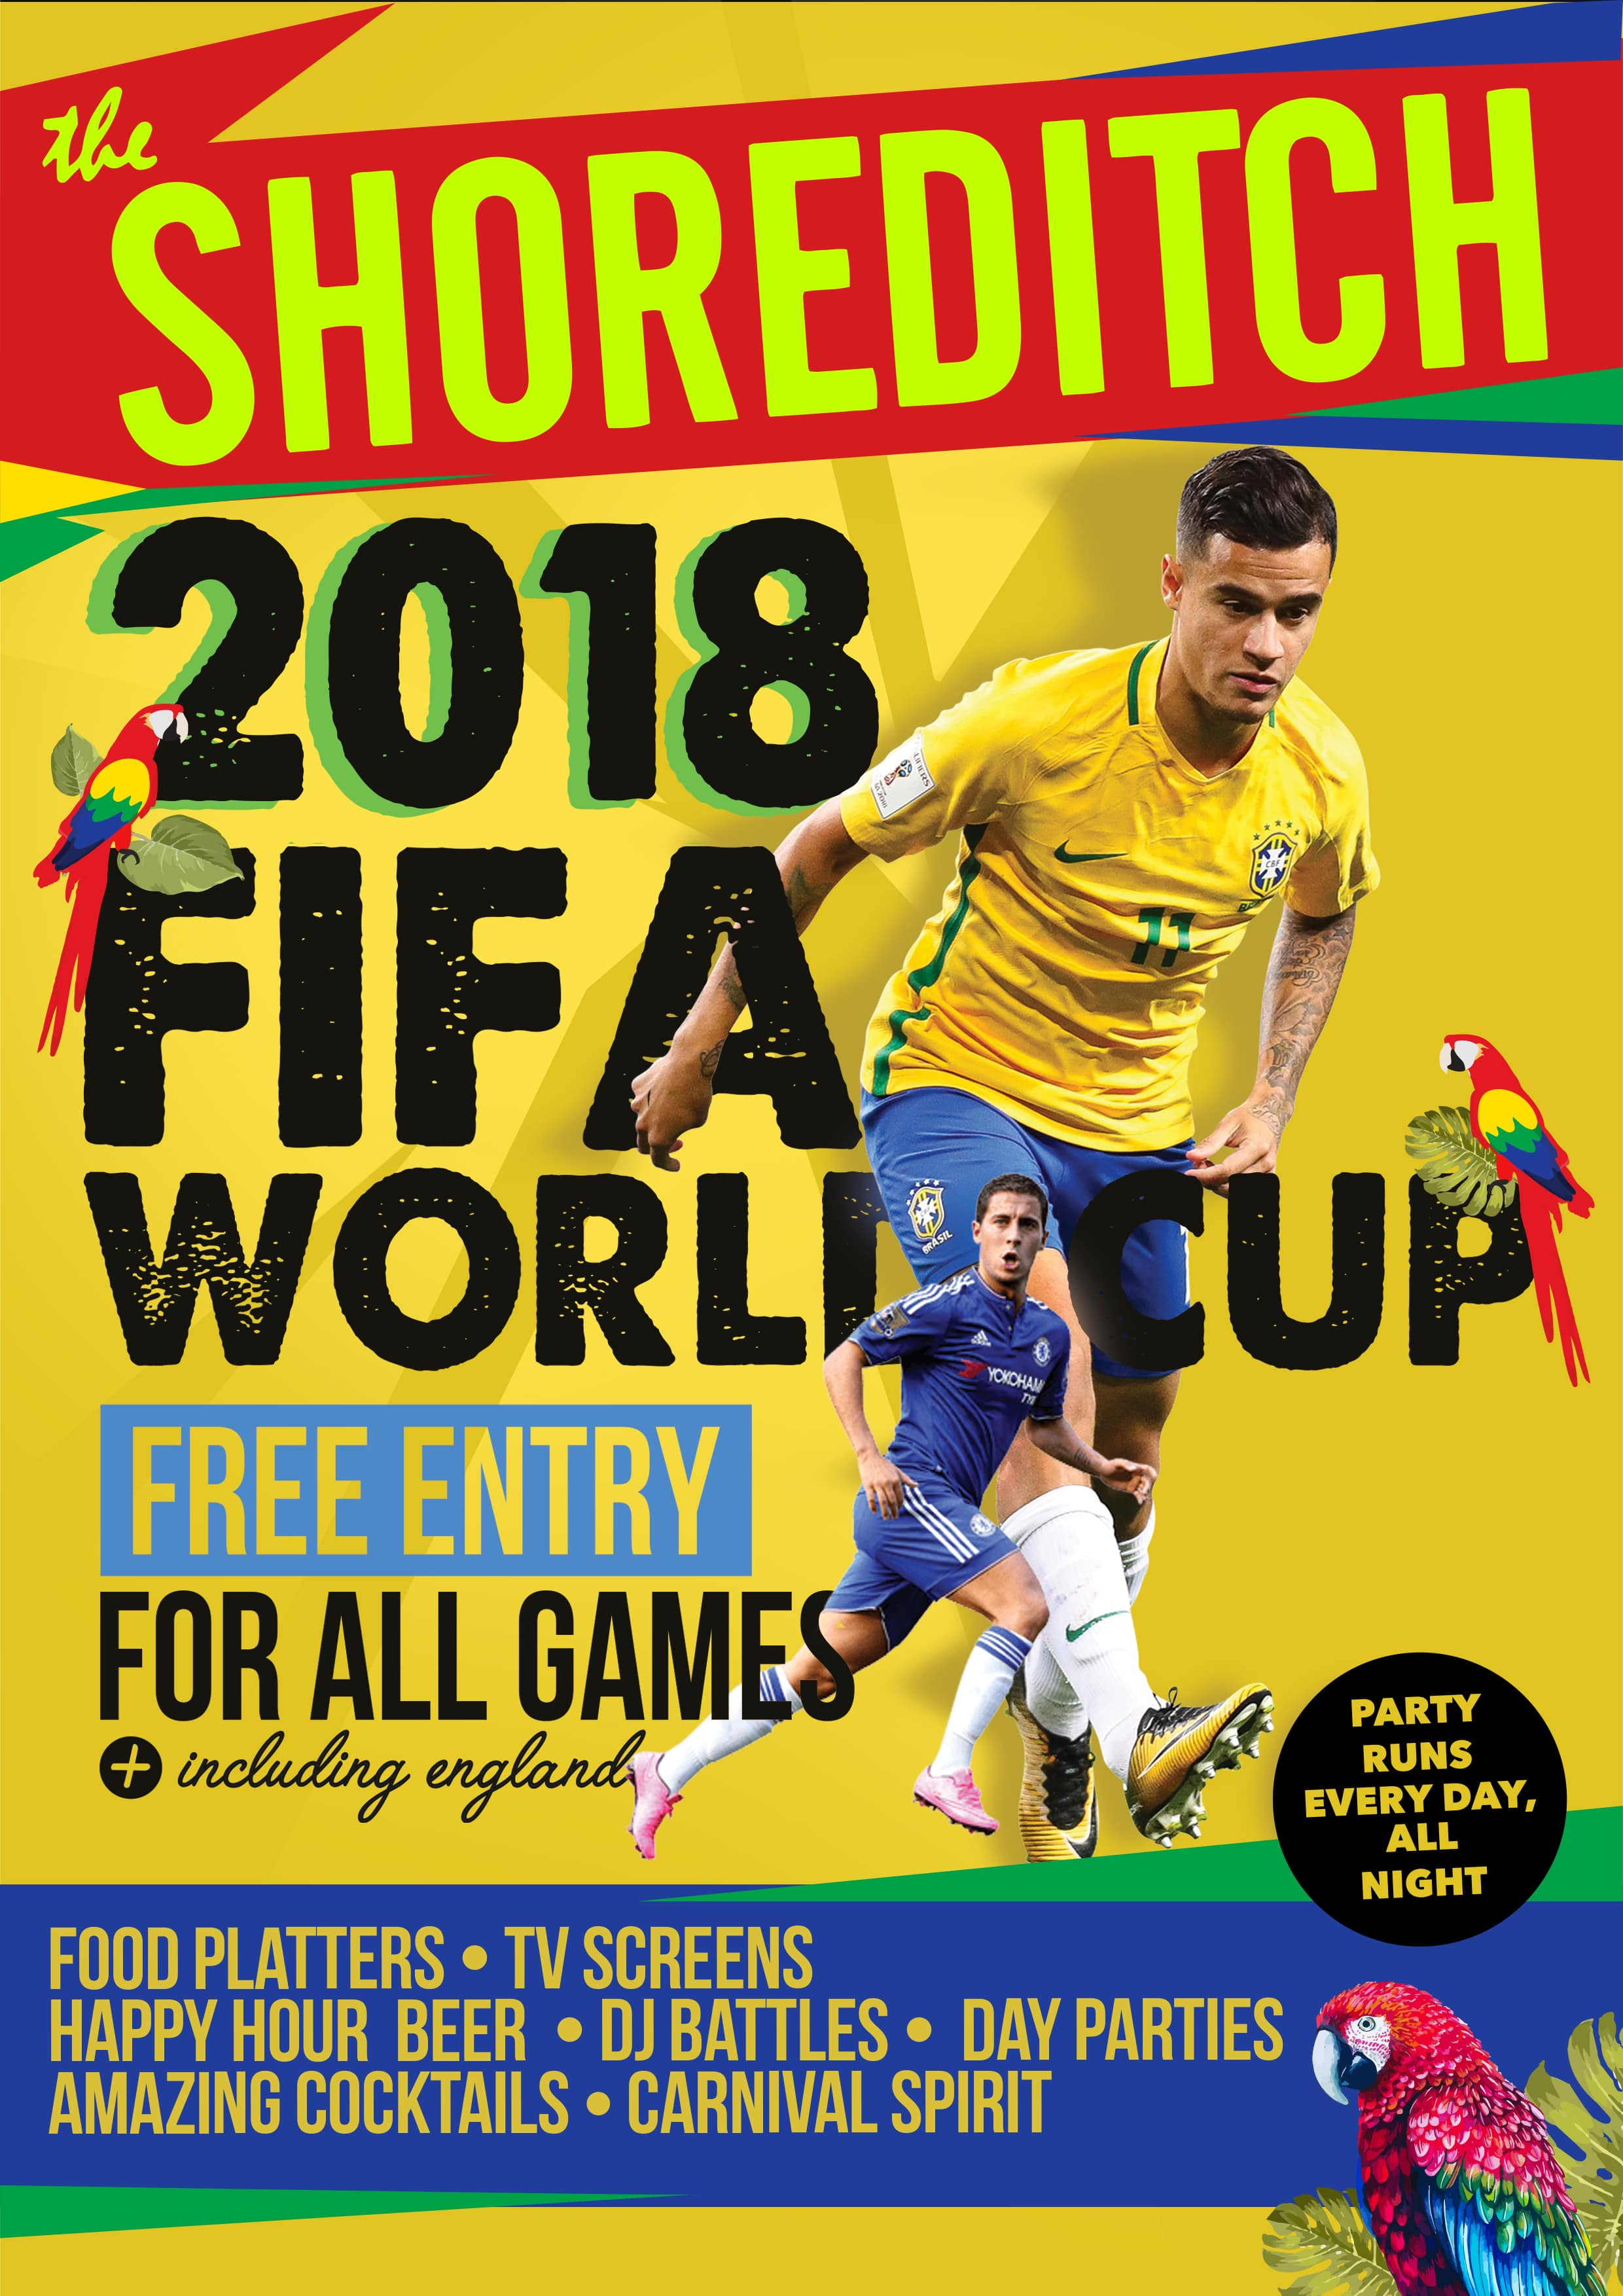 FIFA WORLD CUP 2018 AT THE SHOREDITCH